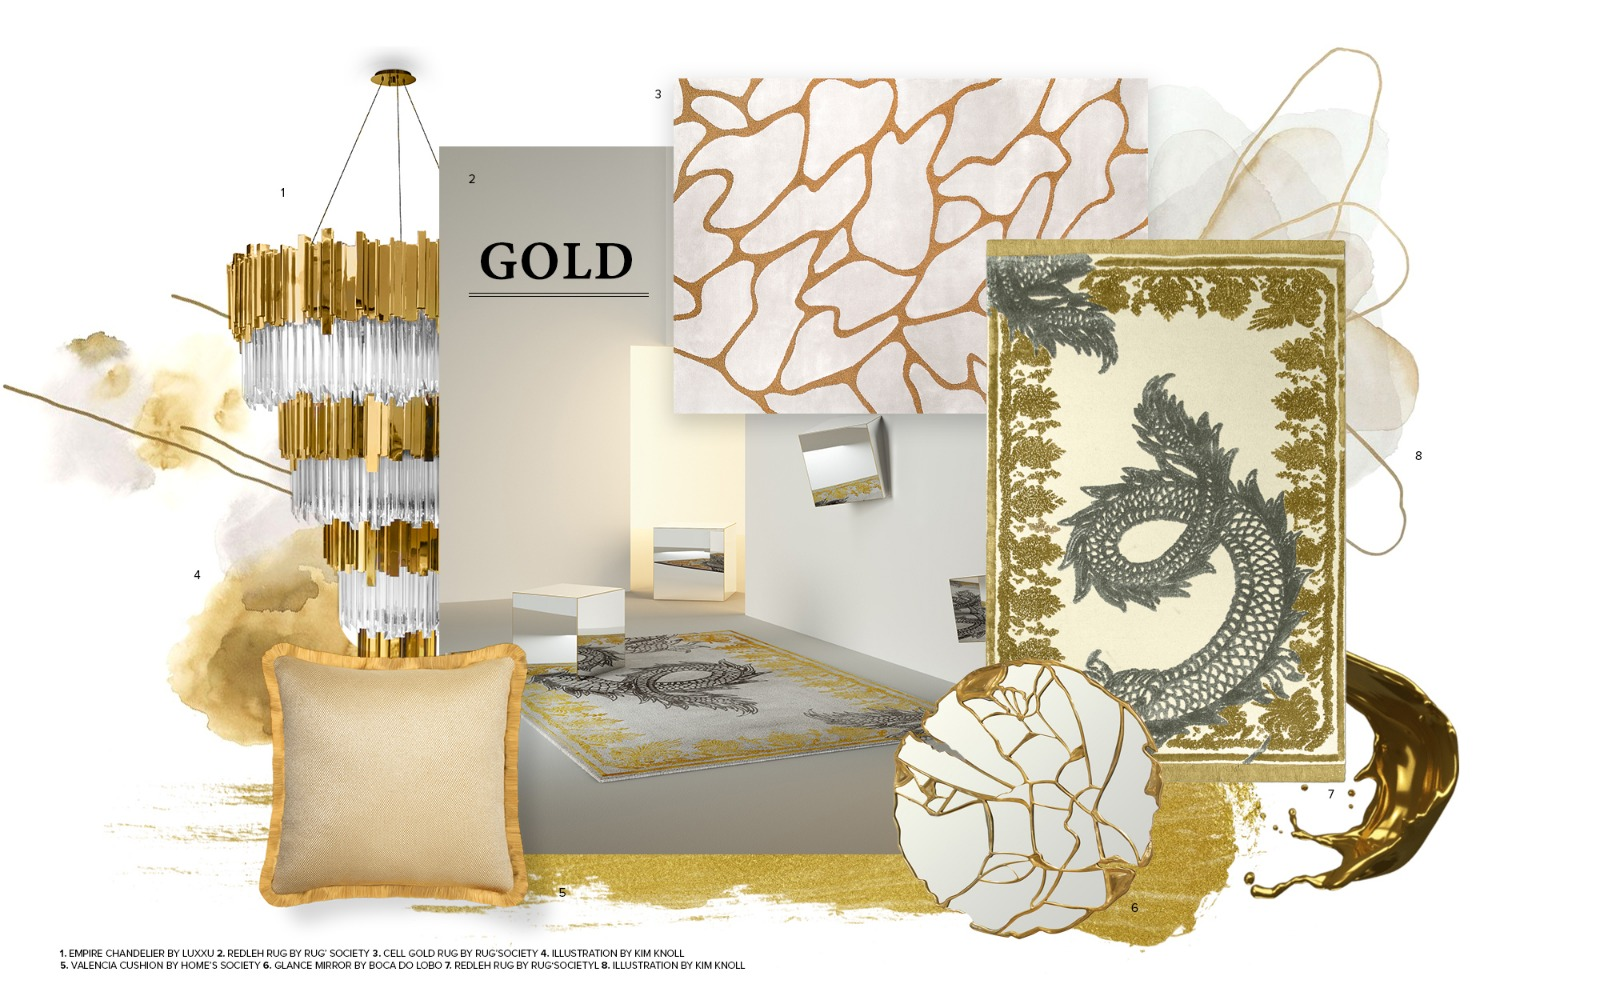 Gold & White Is The Newest Design Trend Of Your Dreams (2) design trend Gold & White Is The Newest Design Trend Of Your Dreams Gold White Is The Newest Design Trend Of Your Dreams 2